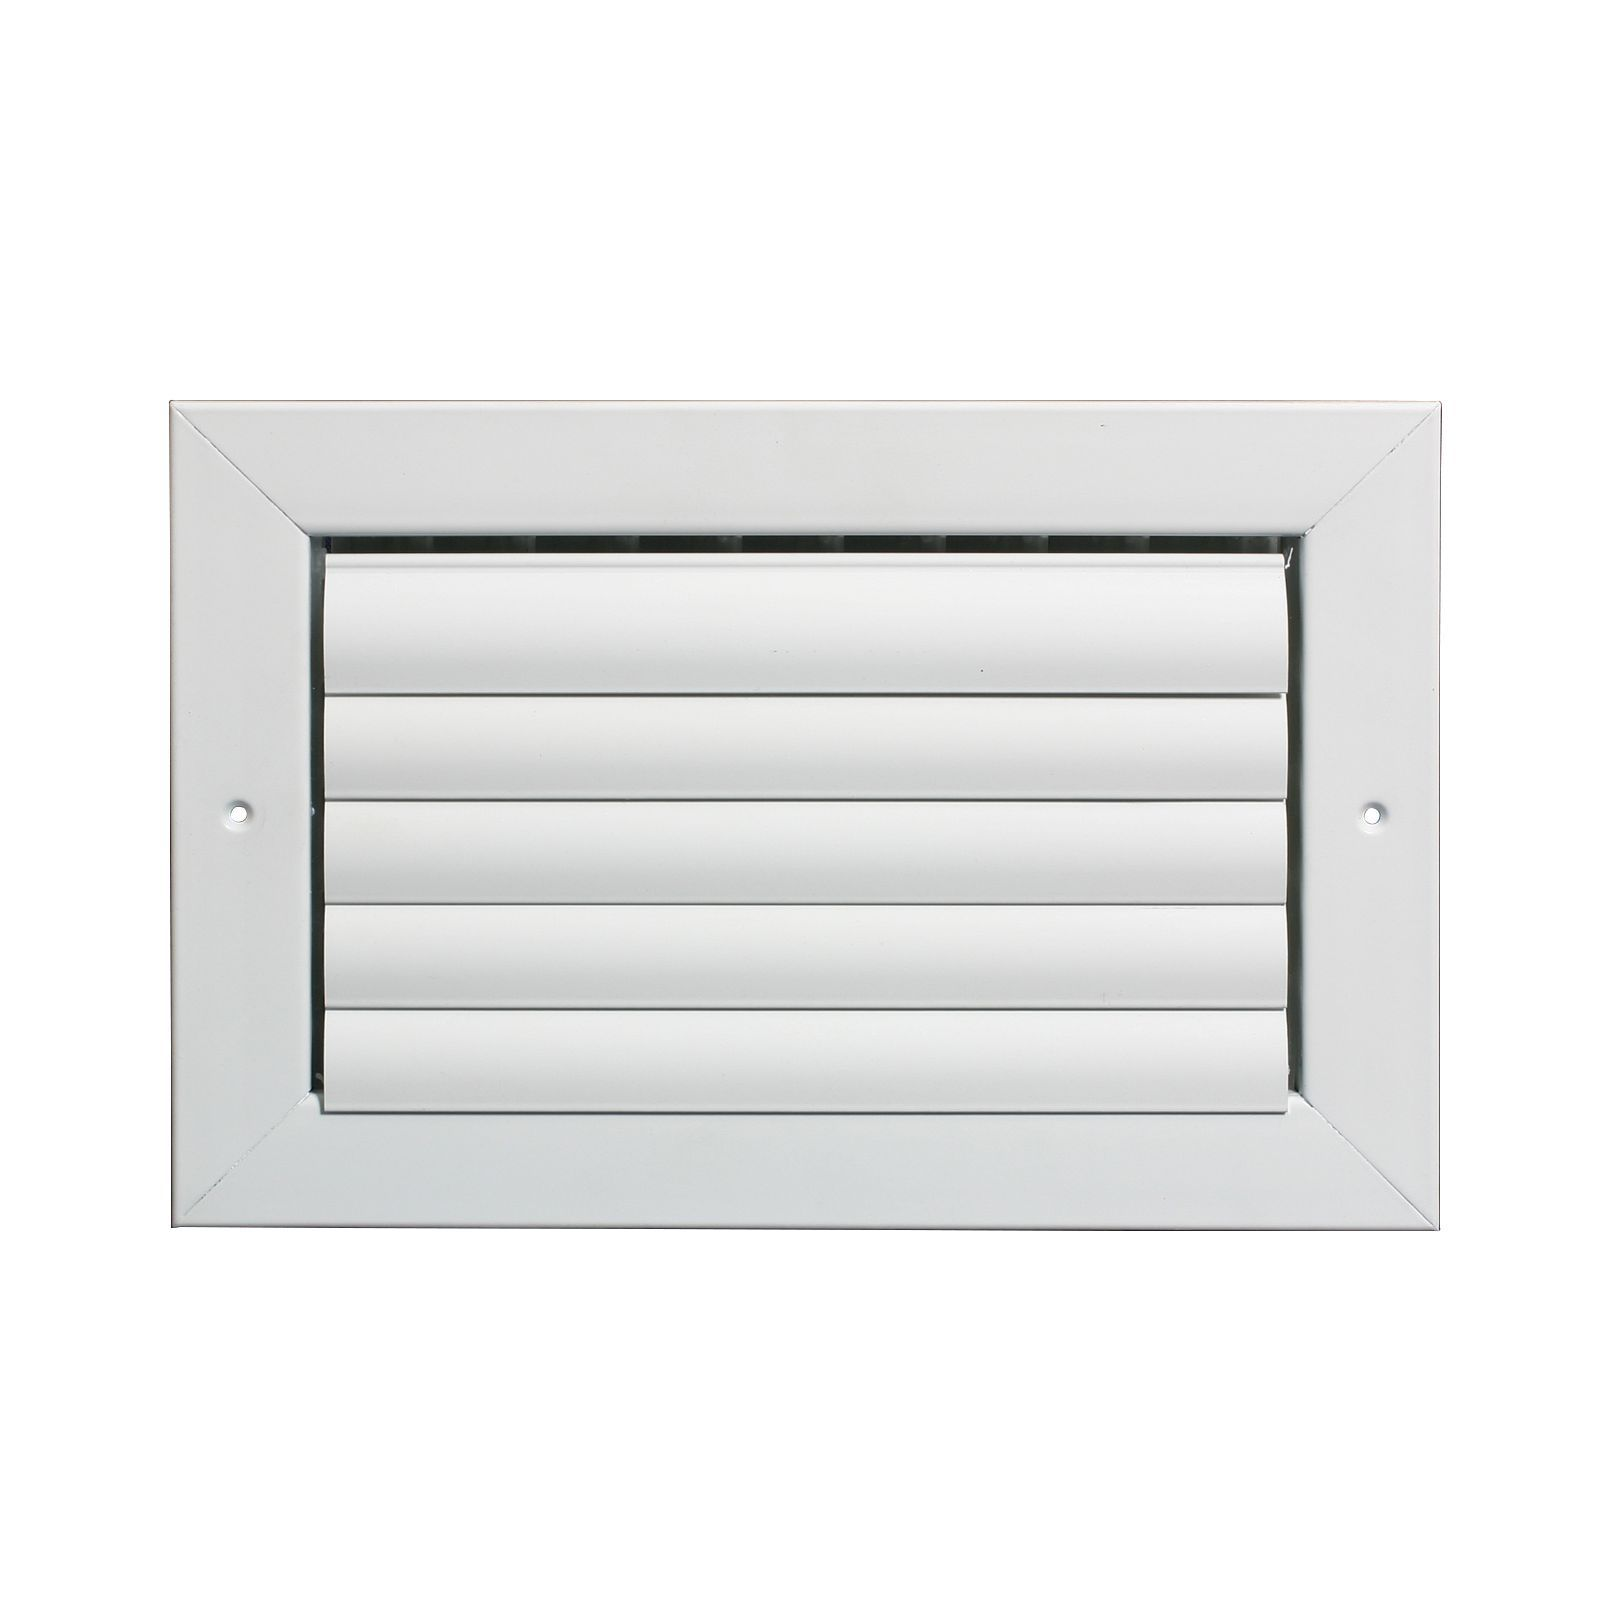 "Grille Tech CL1M1008 - Aluminum Ceiling 1-Way Deflection Supply, Multi-shutter 10"" X 8"" White"